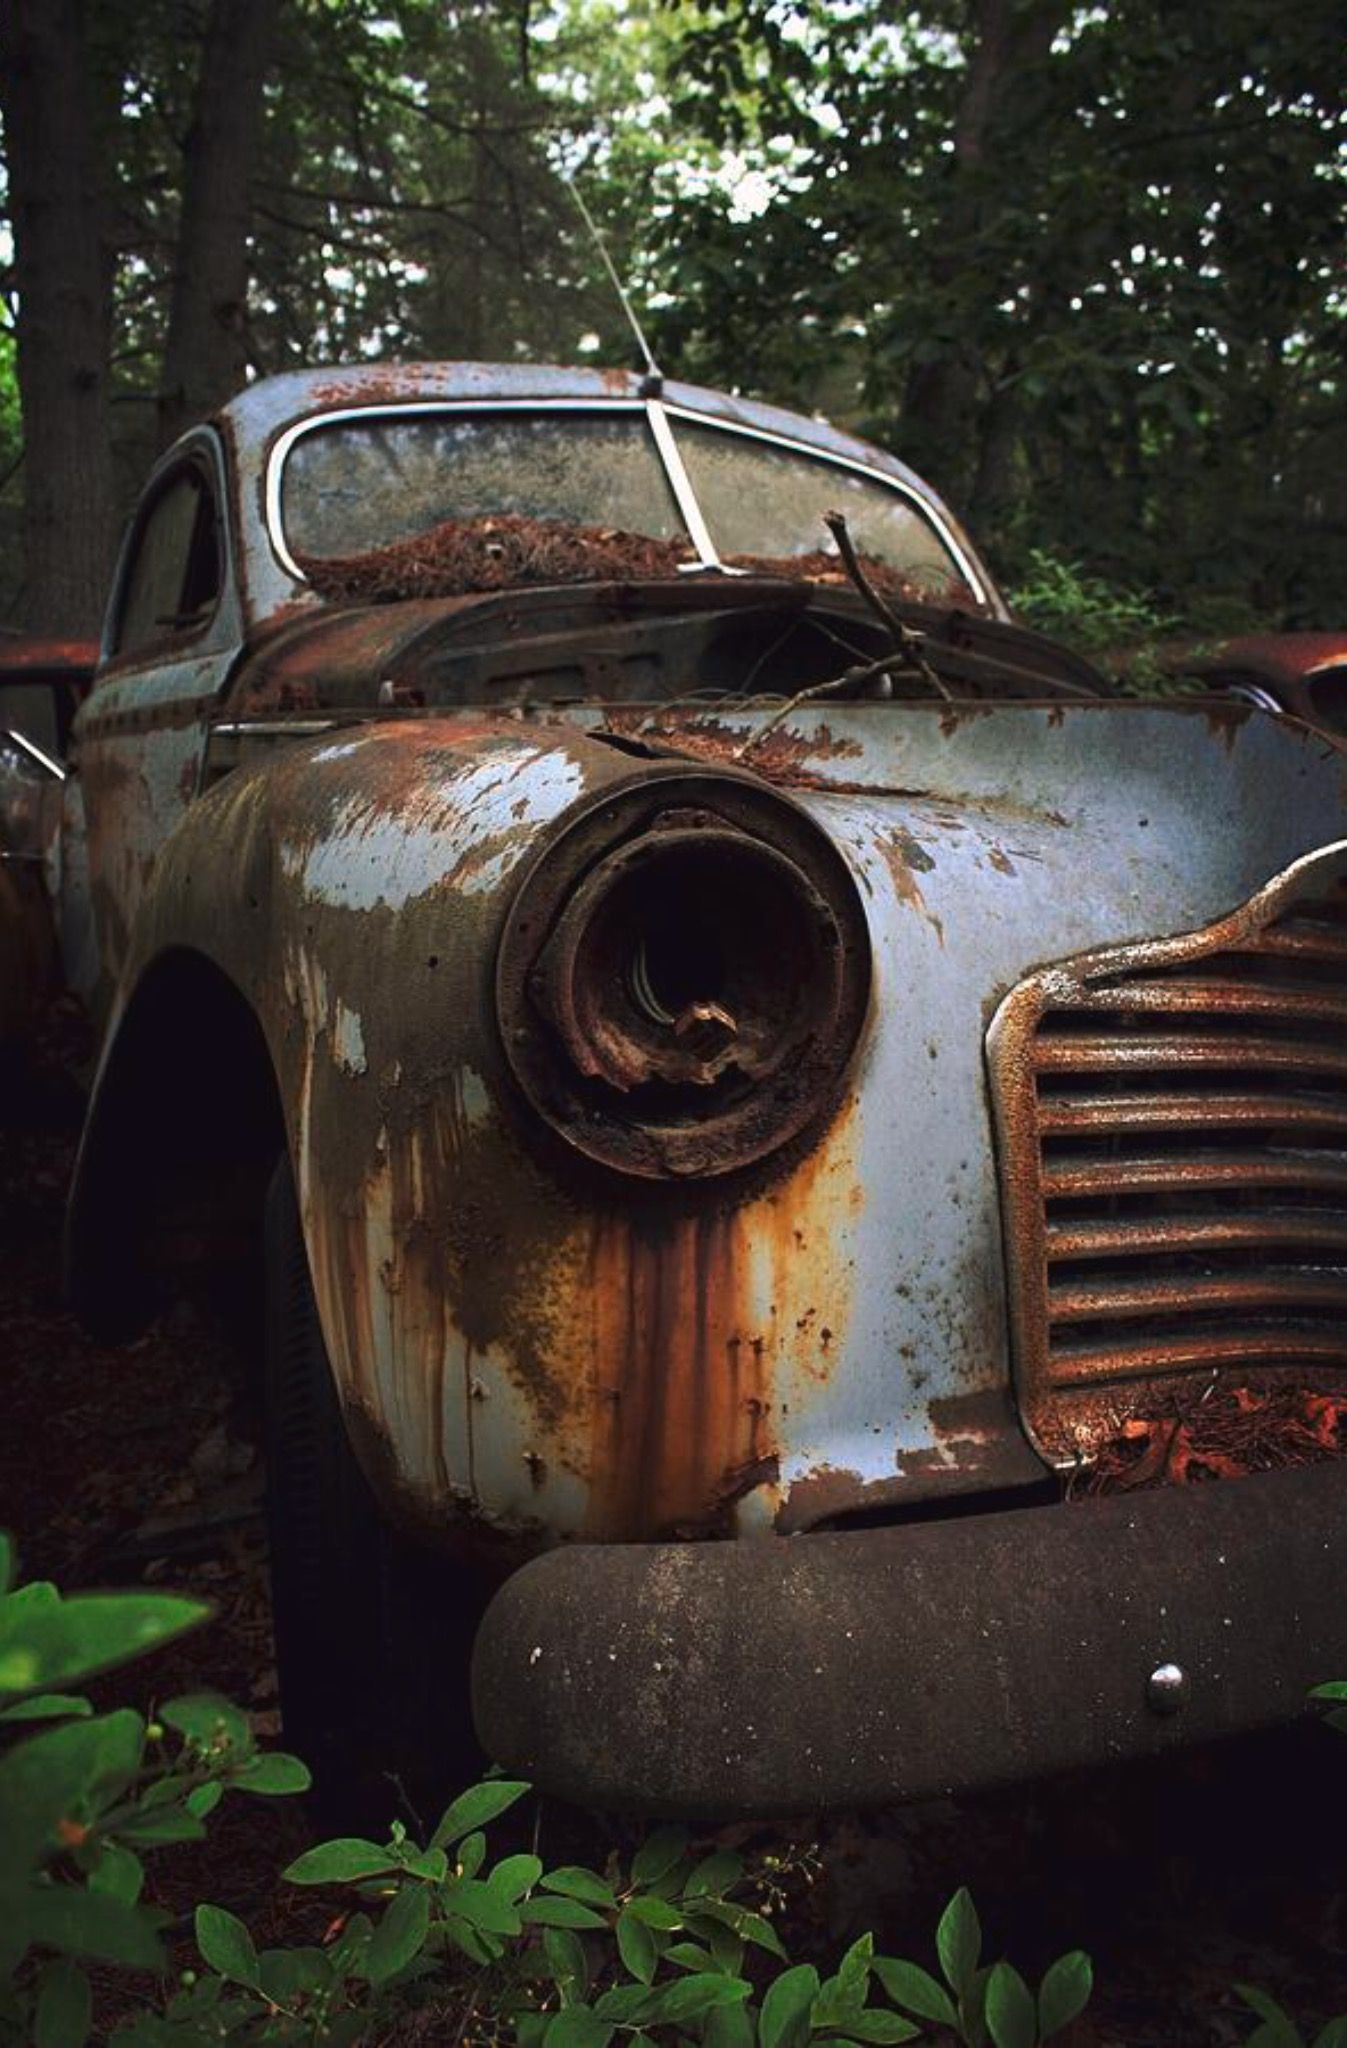 Rusted Old Car is a photograph by Allison Ferris. Source ...